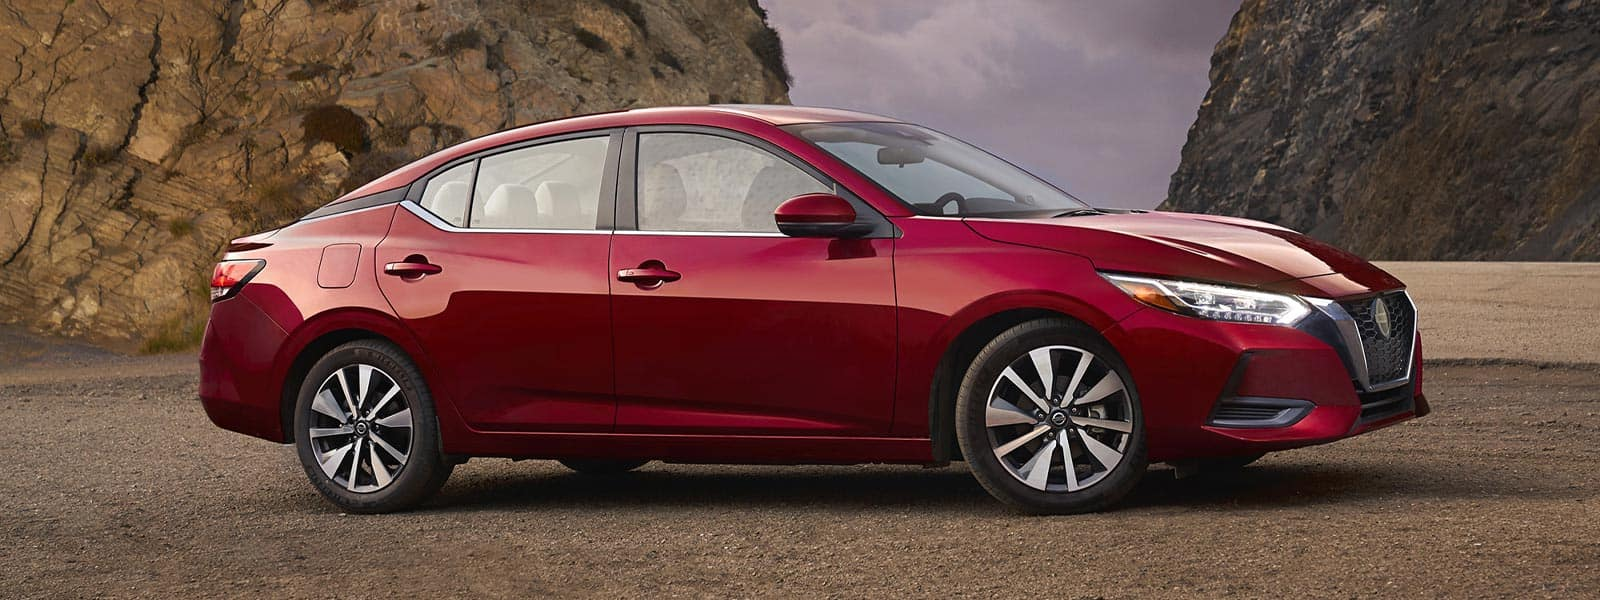 Buy new 2021 Nissan Sentra in Gainesville Georgia